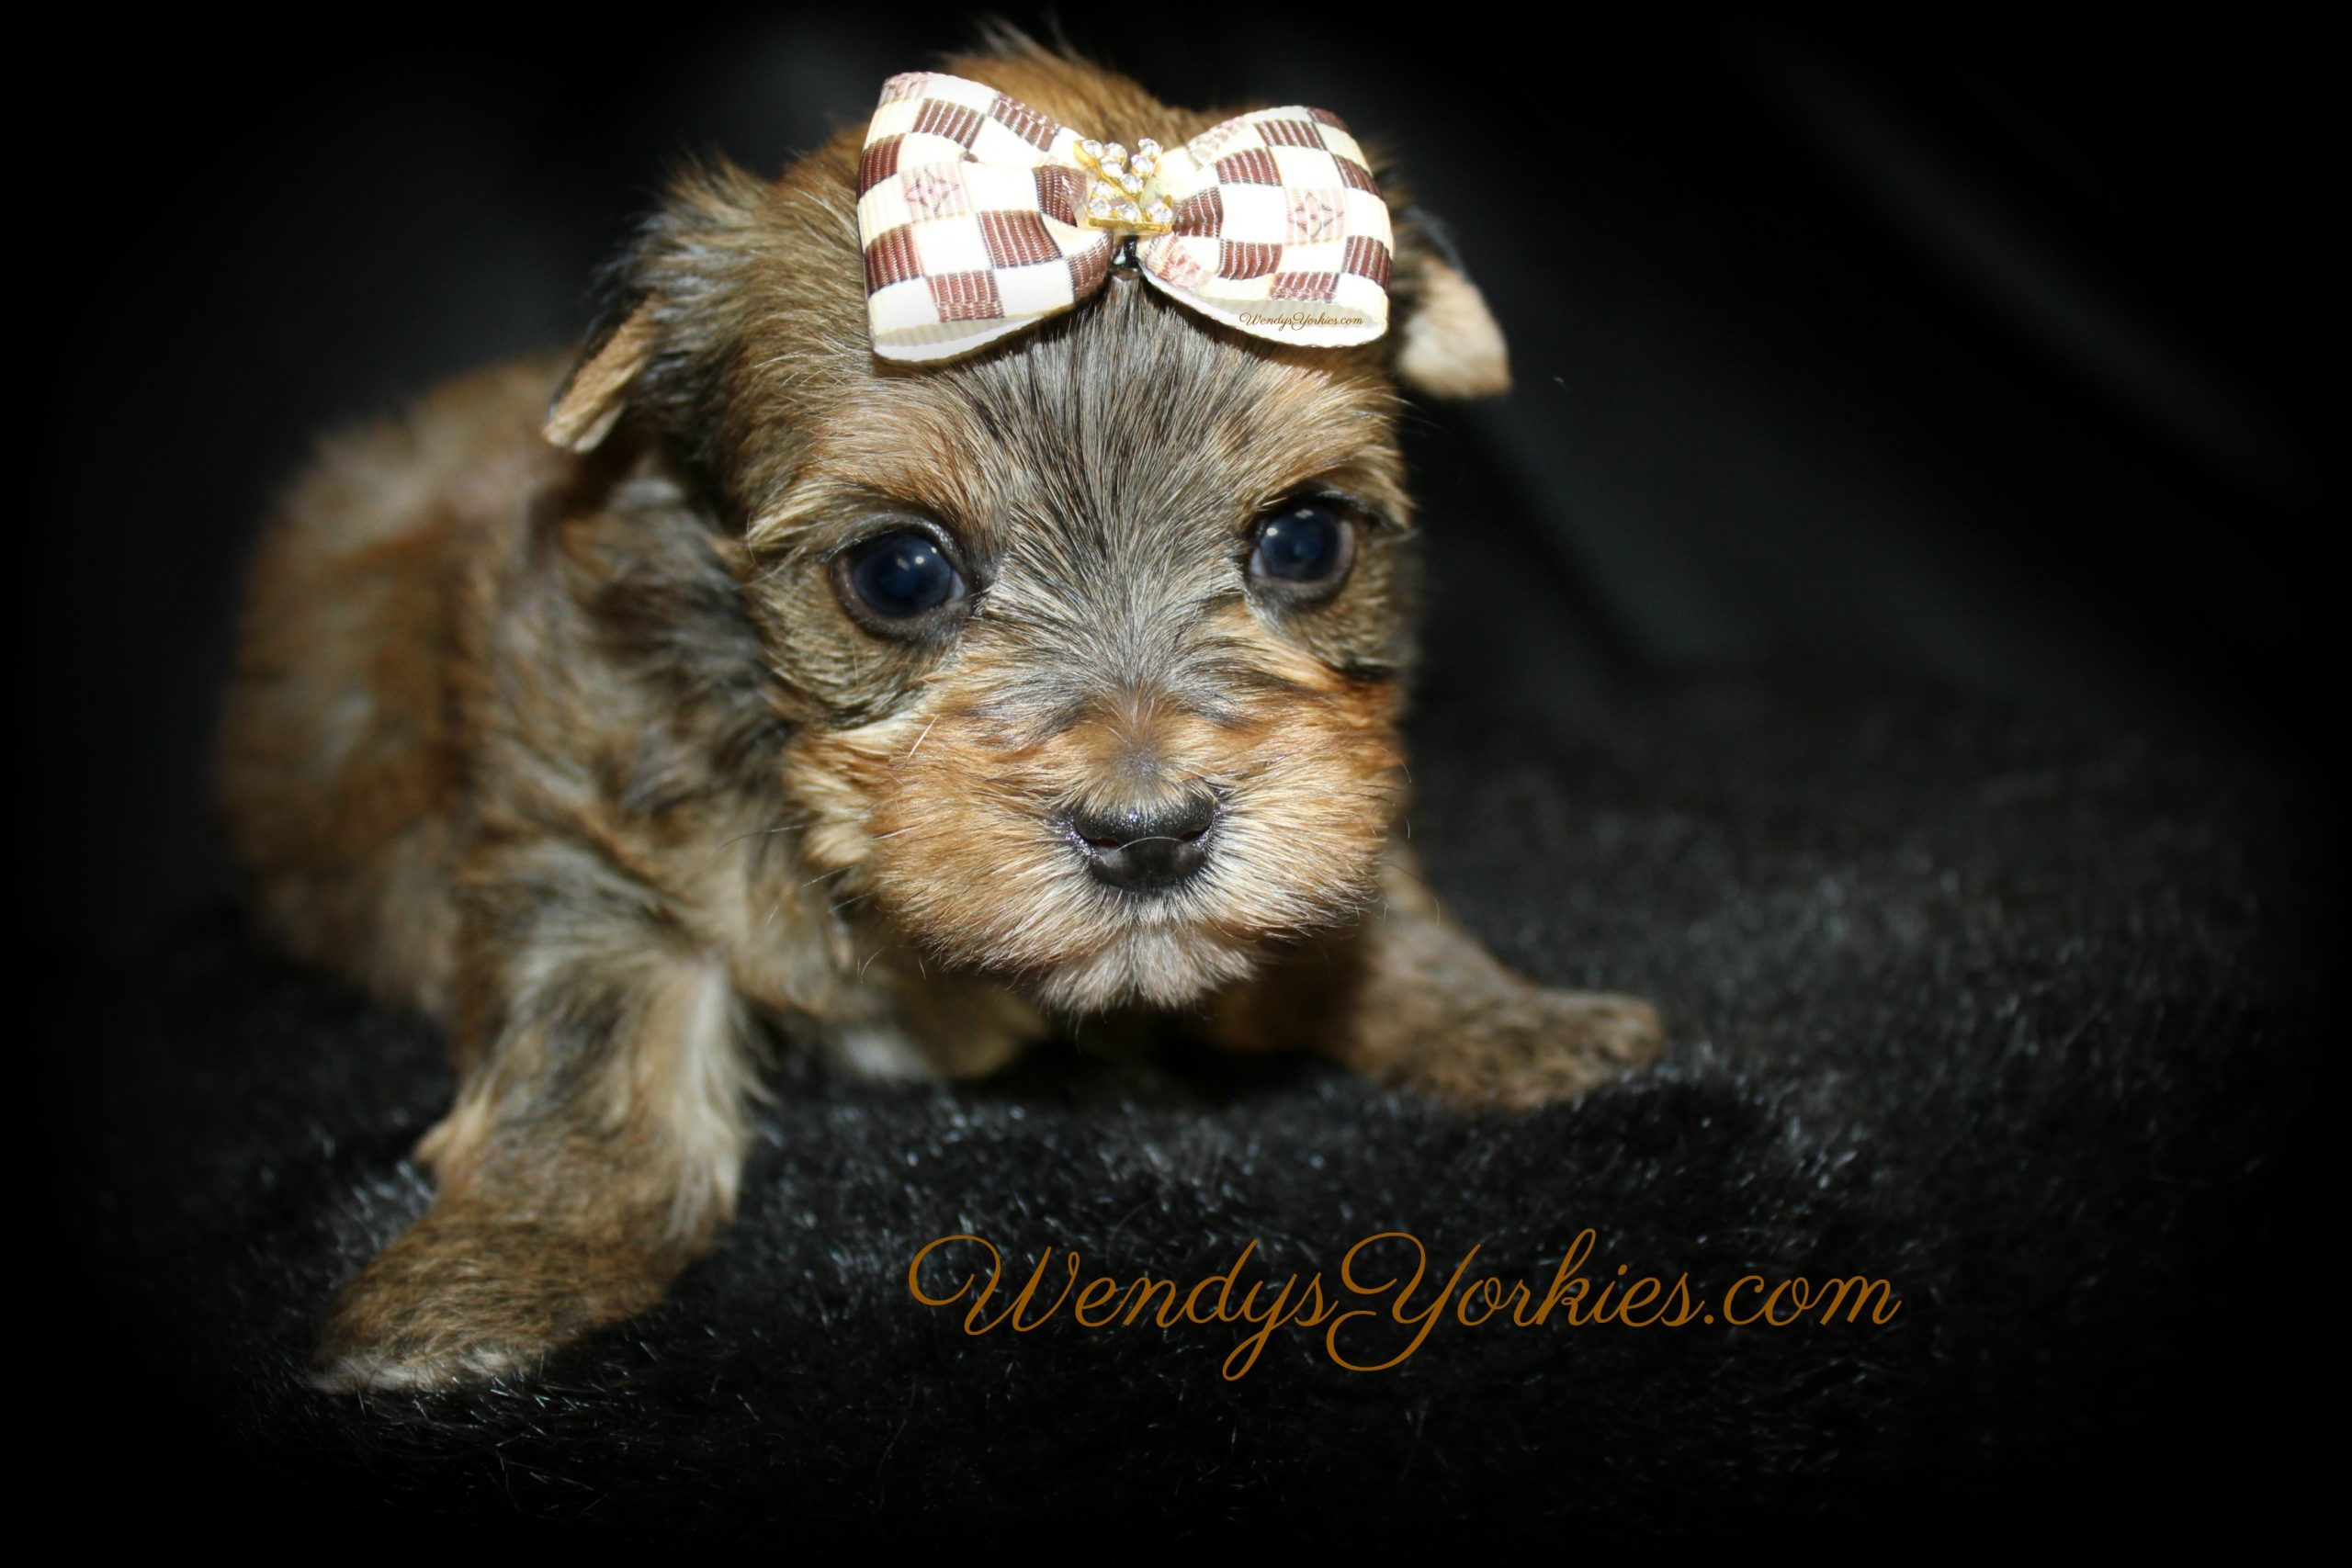 Sable Blonde Male Yorkie puppy for sale, Lela m3, WendysYorkies.com